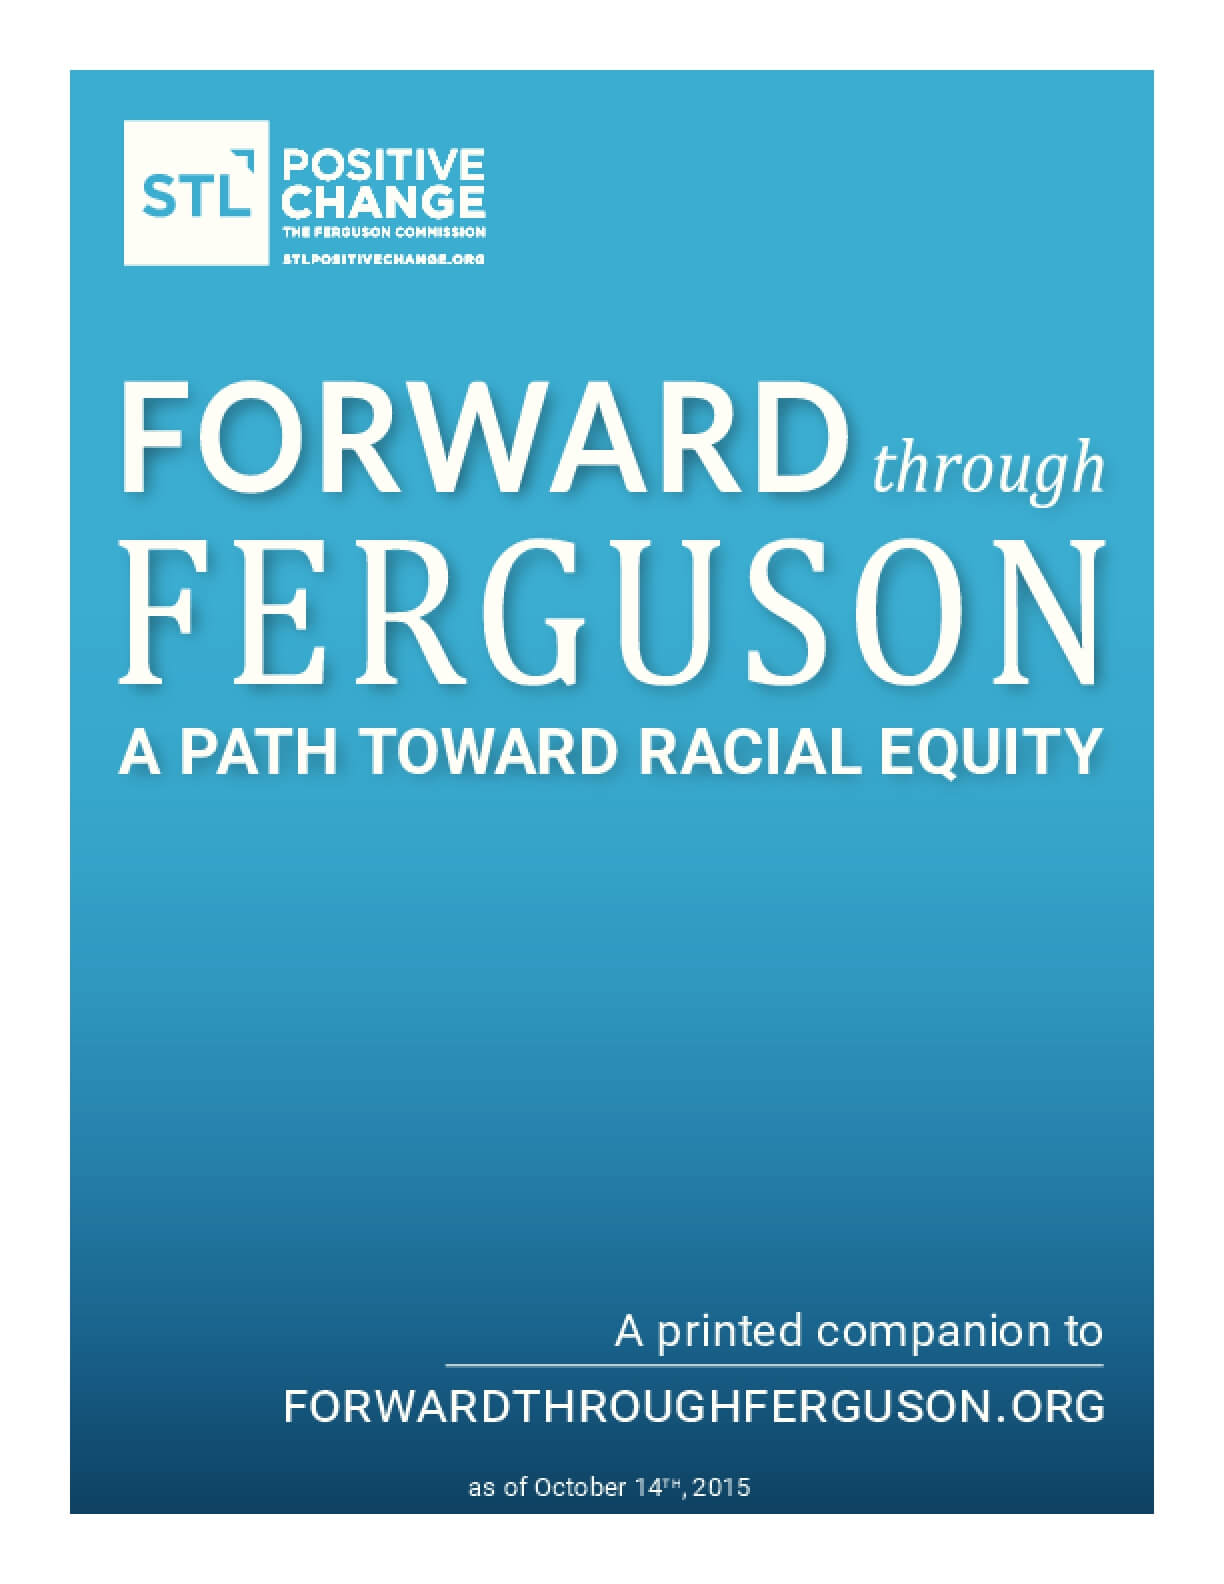 Forward through Ferguson: A Path Toward Racial Equity